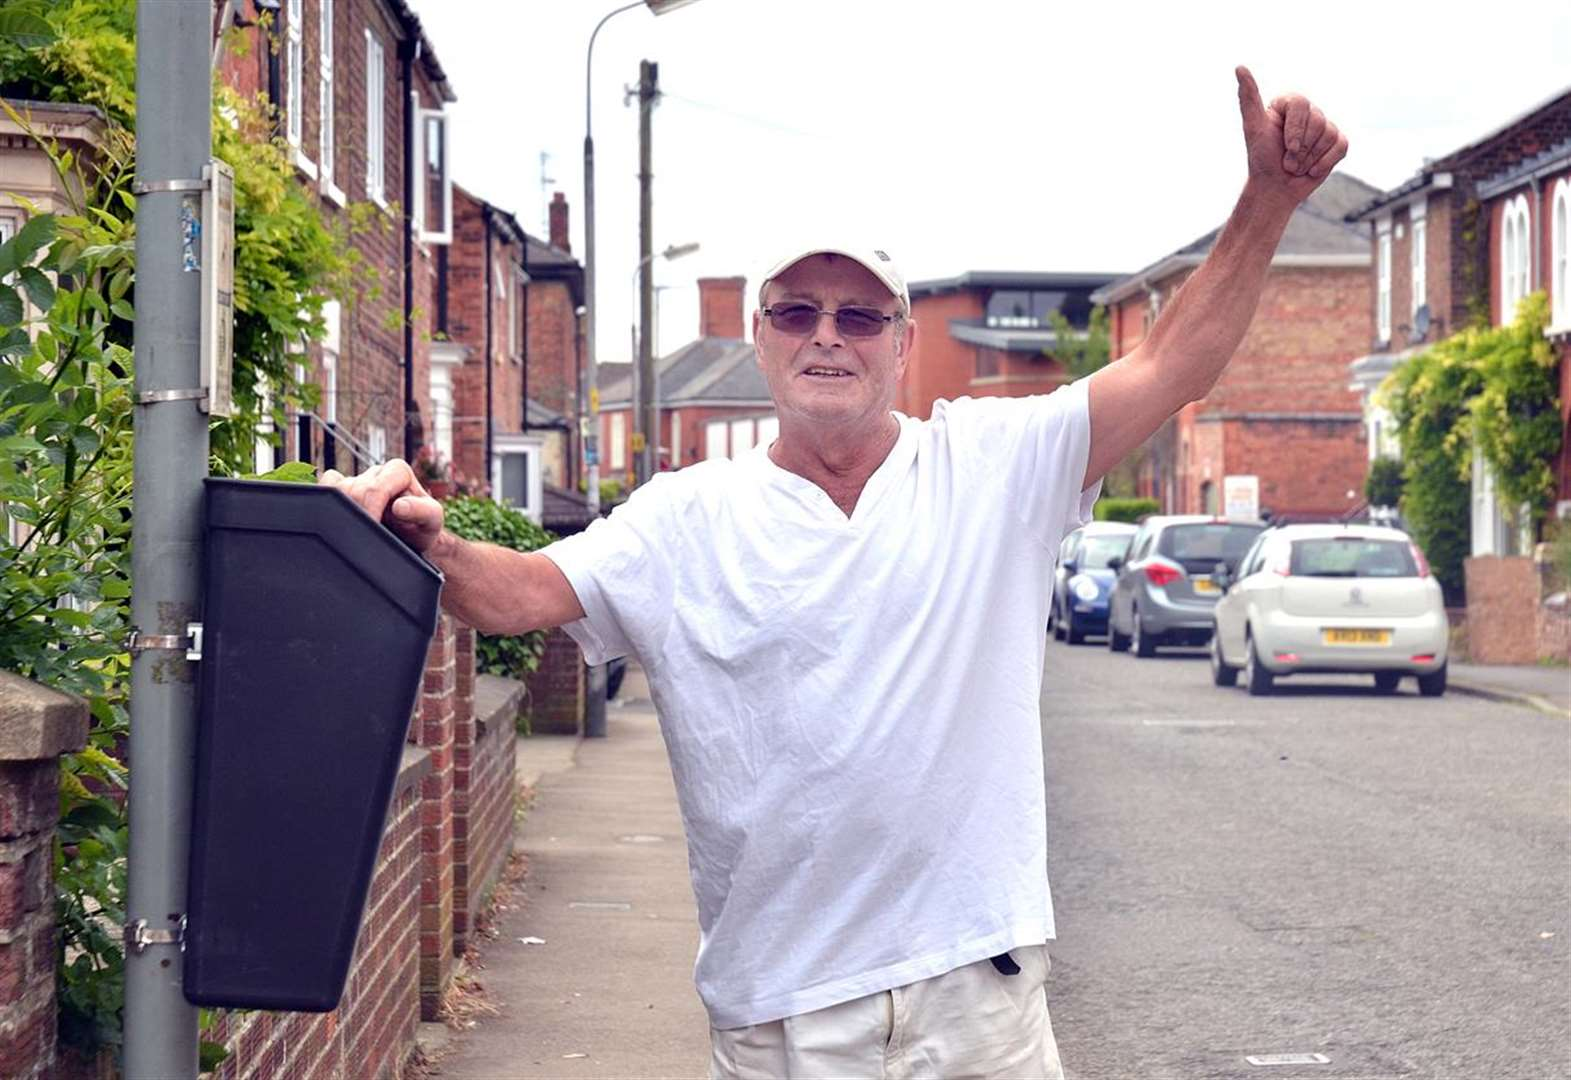 Spalding residents win four year battle to get bins in their street